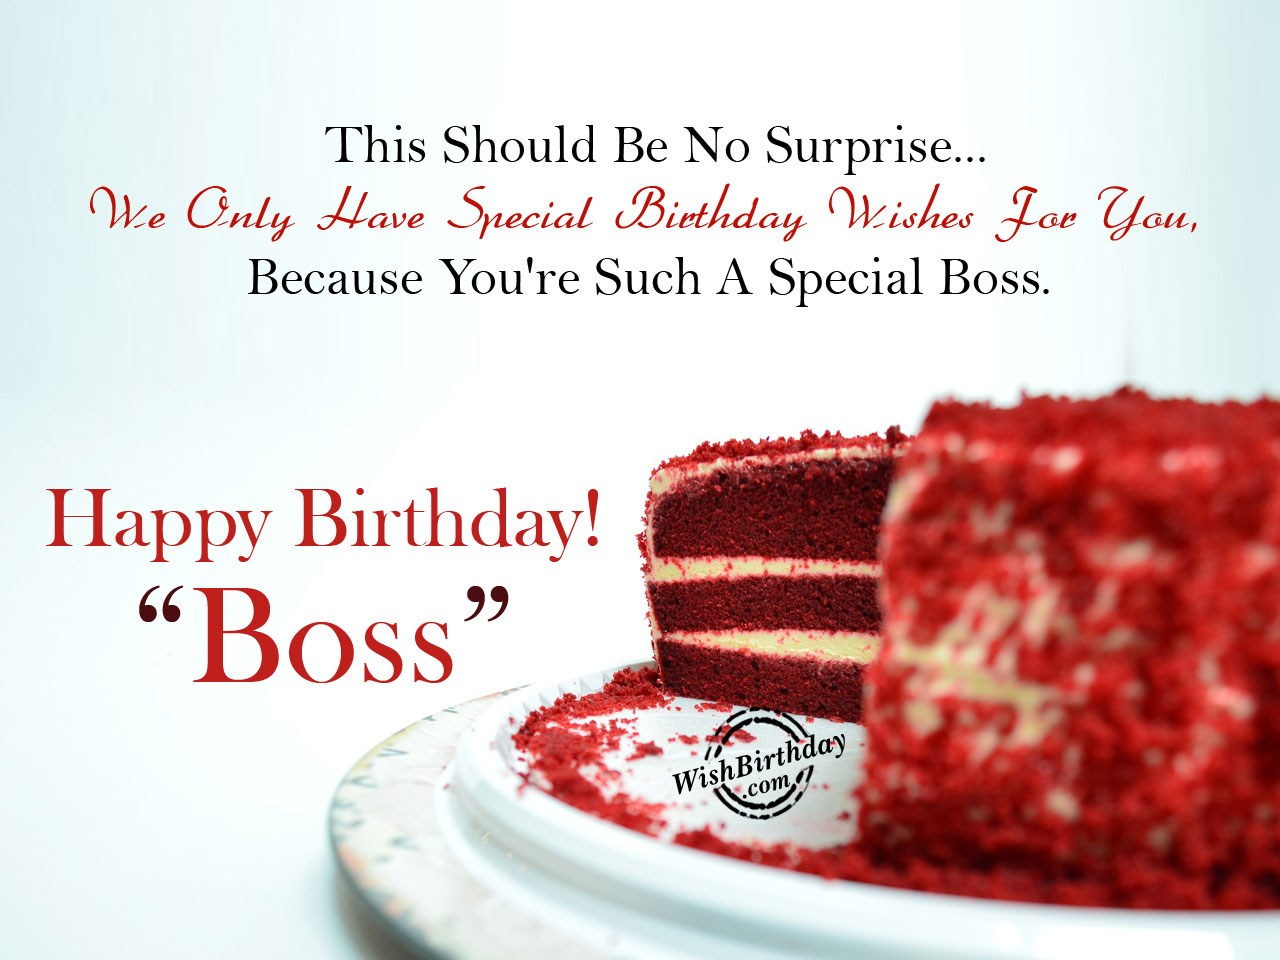 Birthday wishes for boss you are such a special boss happy birthday boss kristyandbryce Choice Image